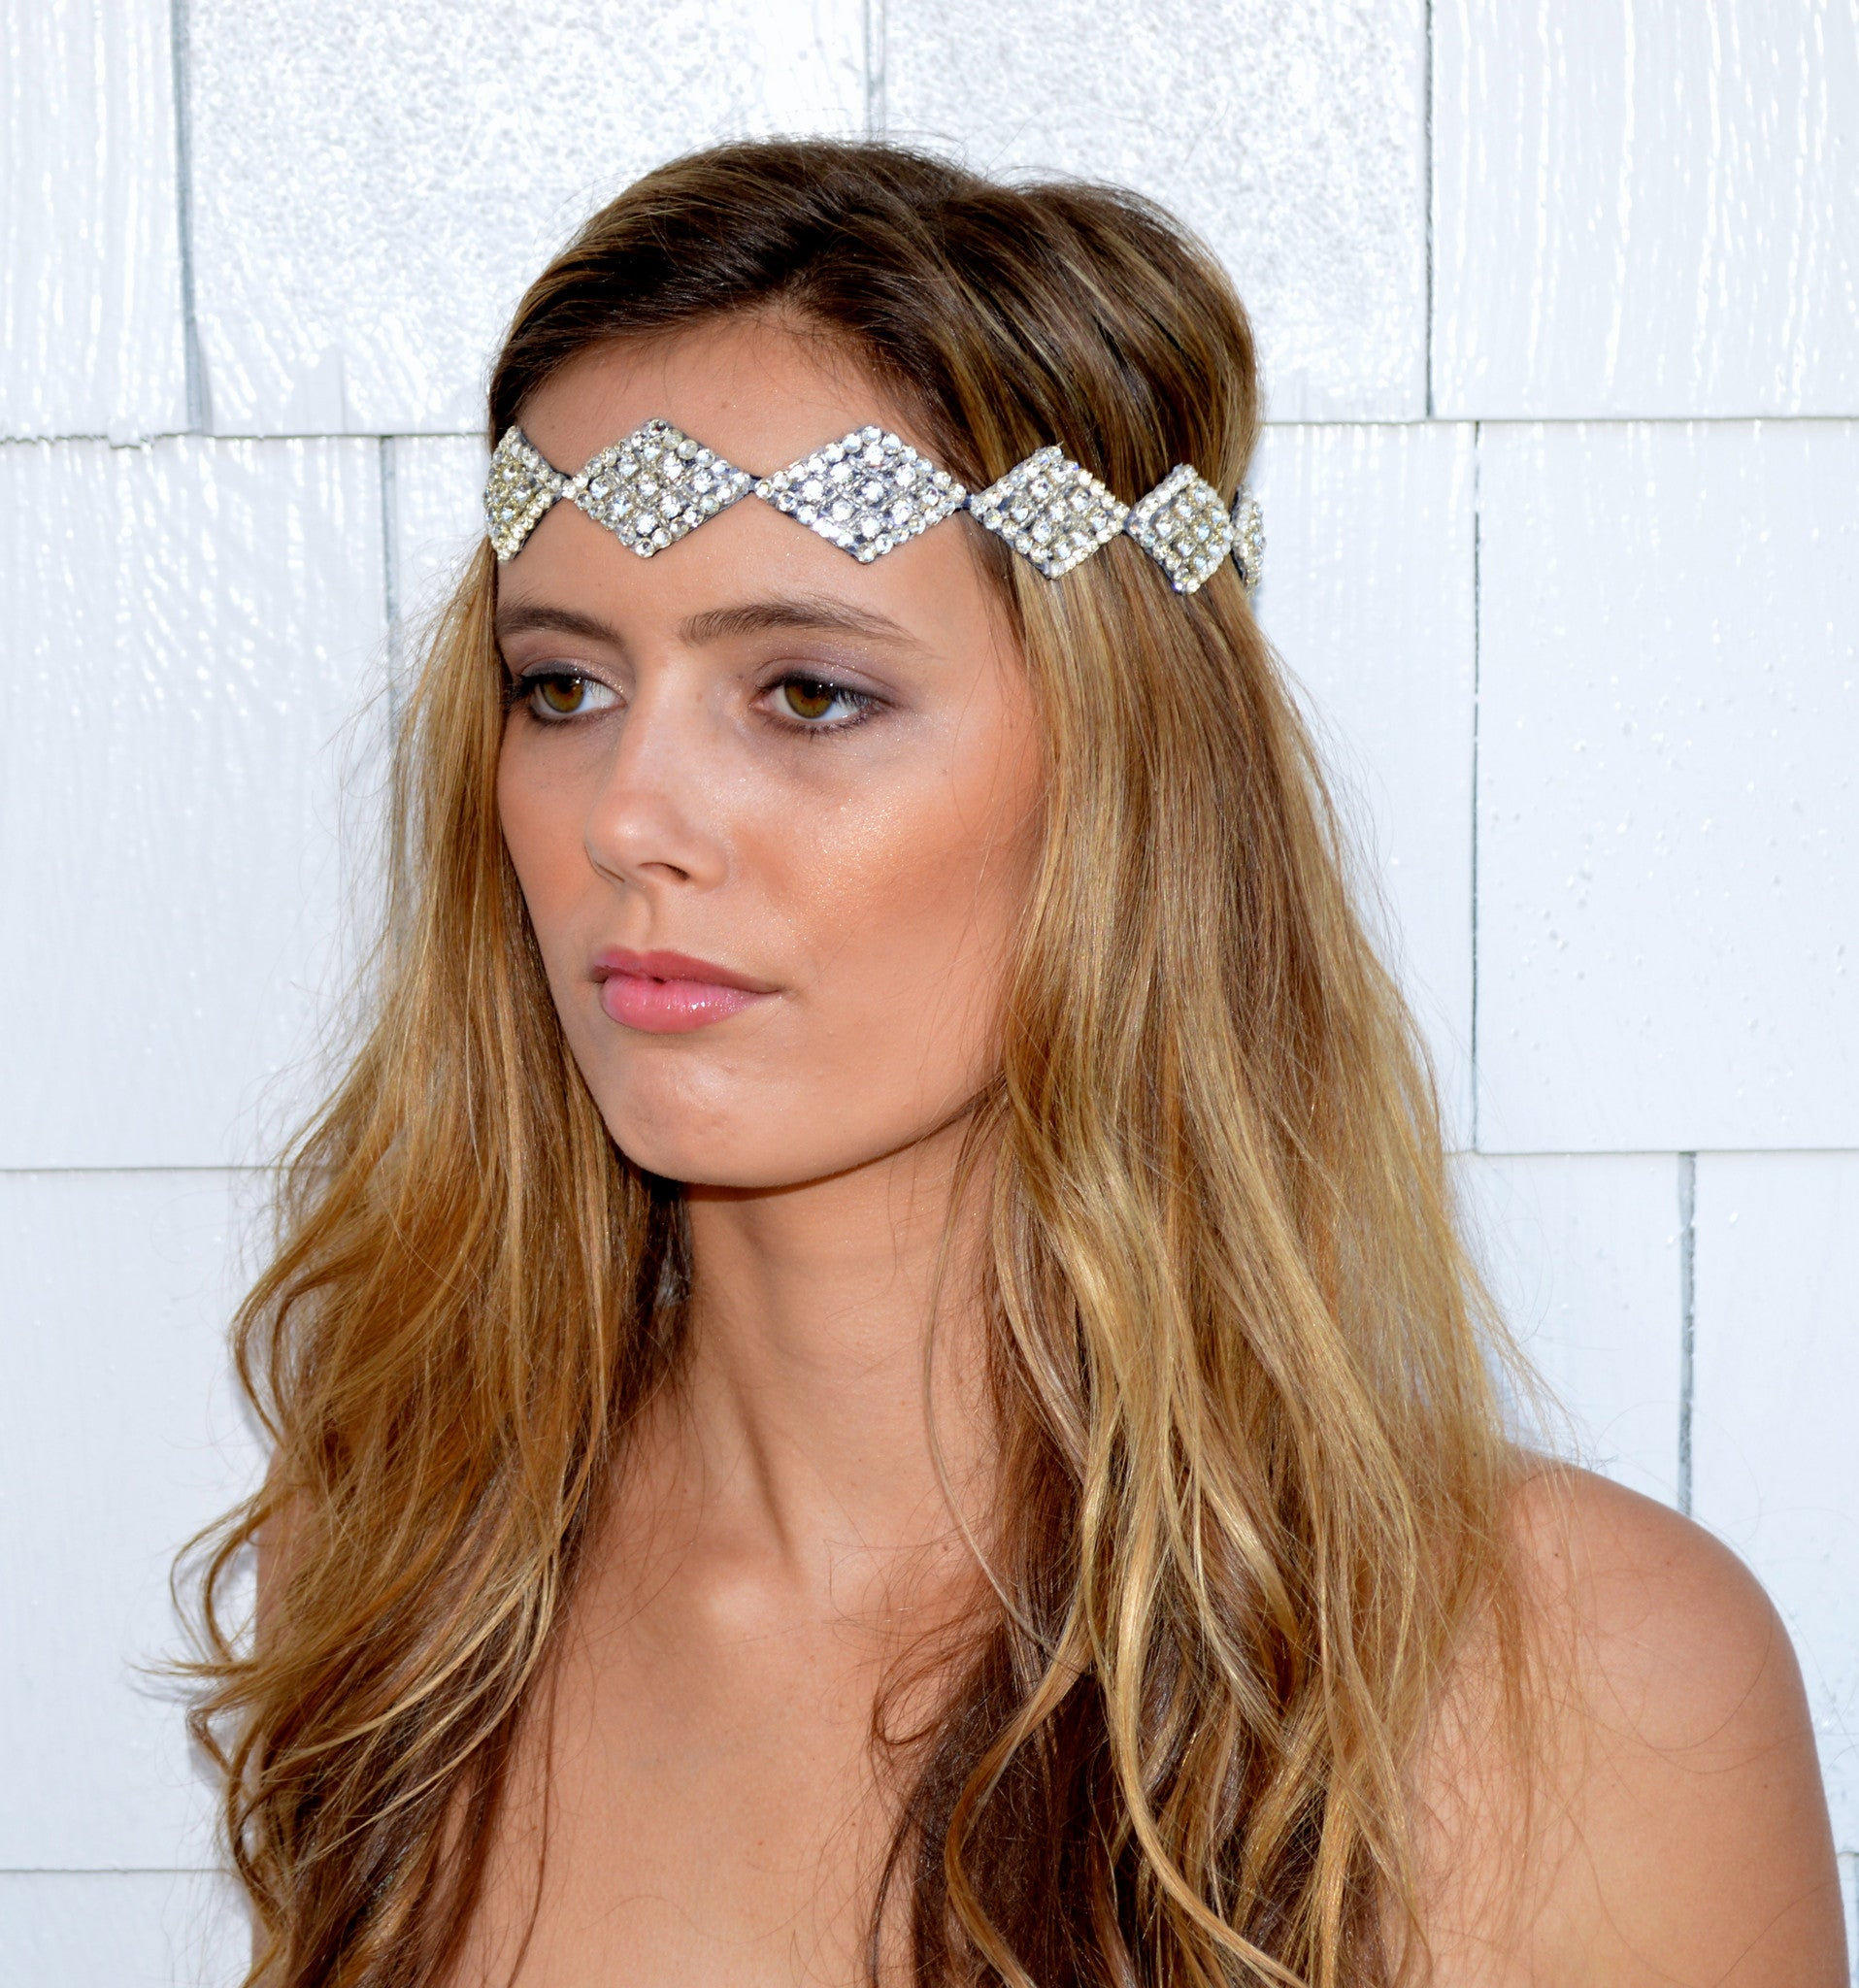 The Natalie Headpiece